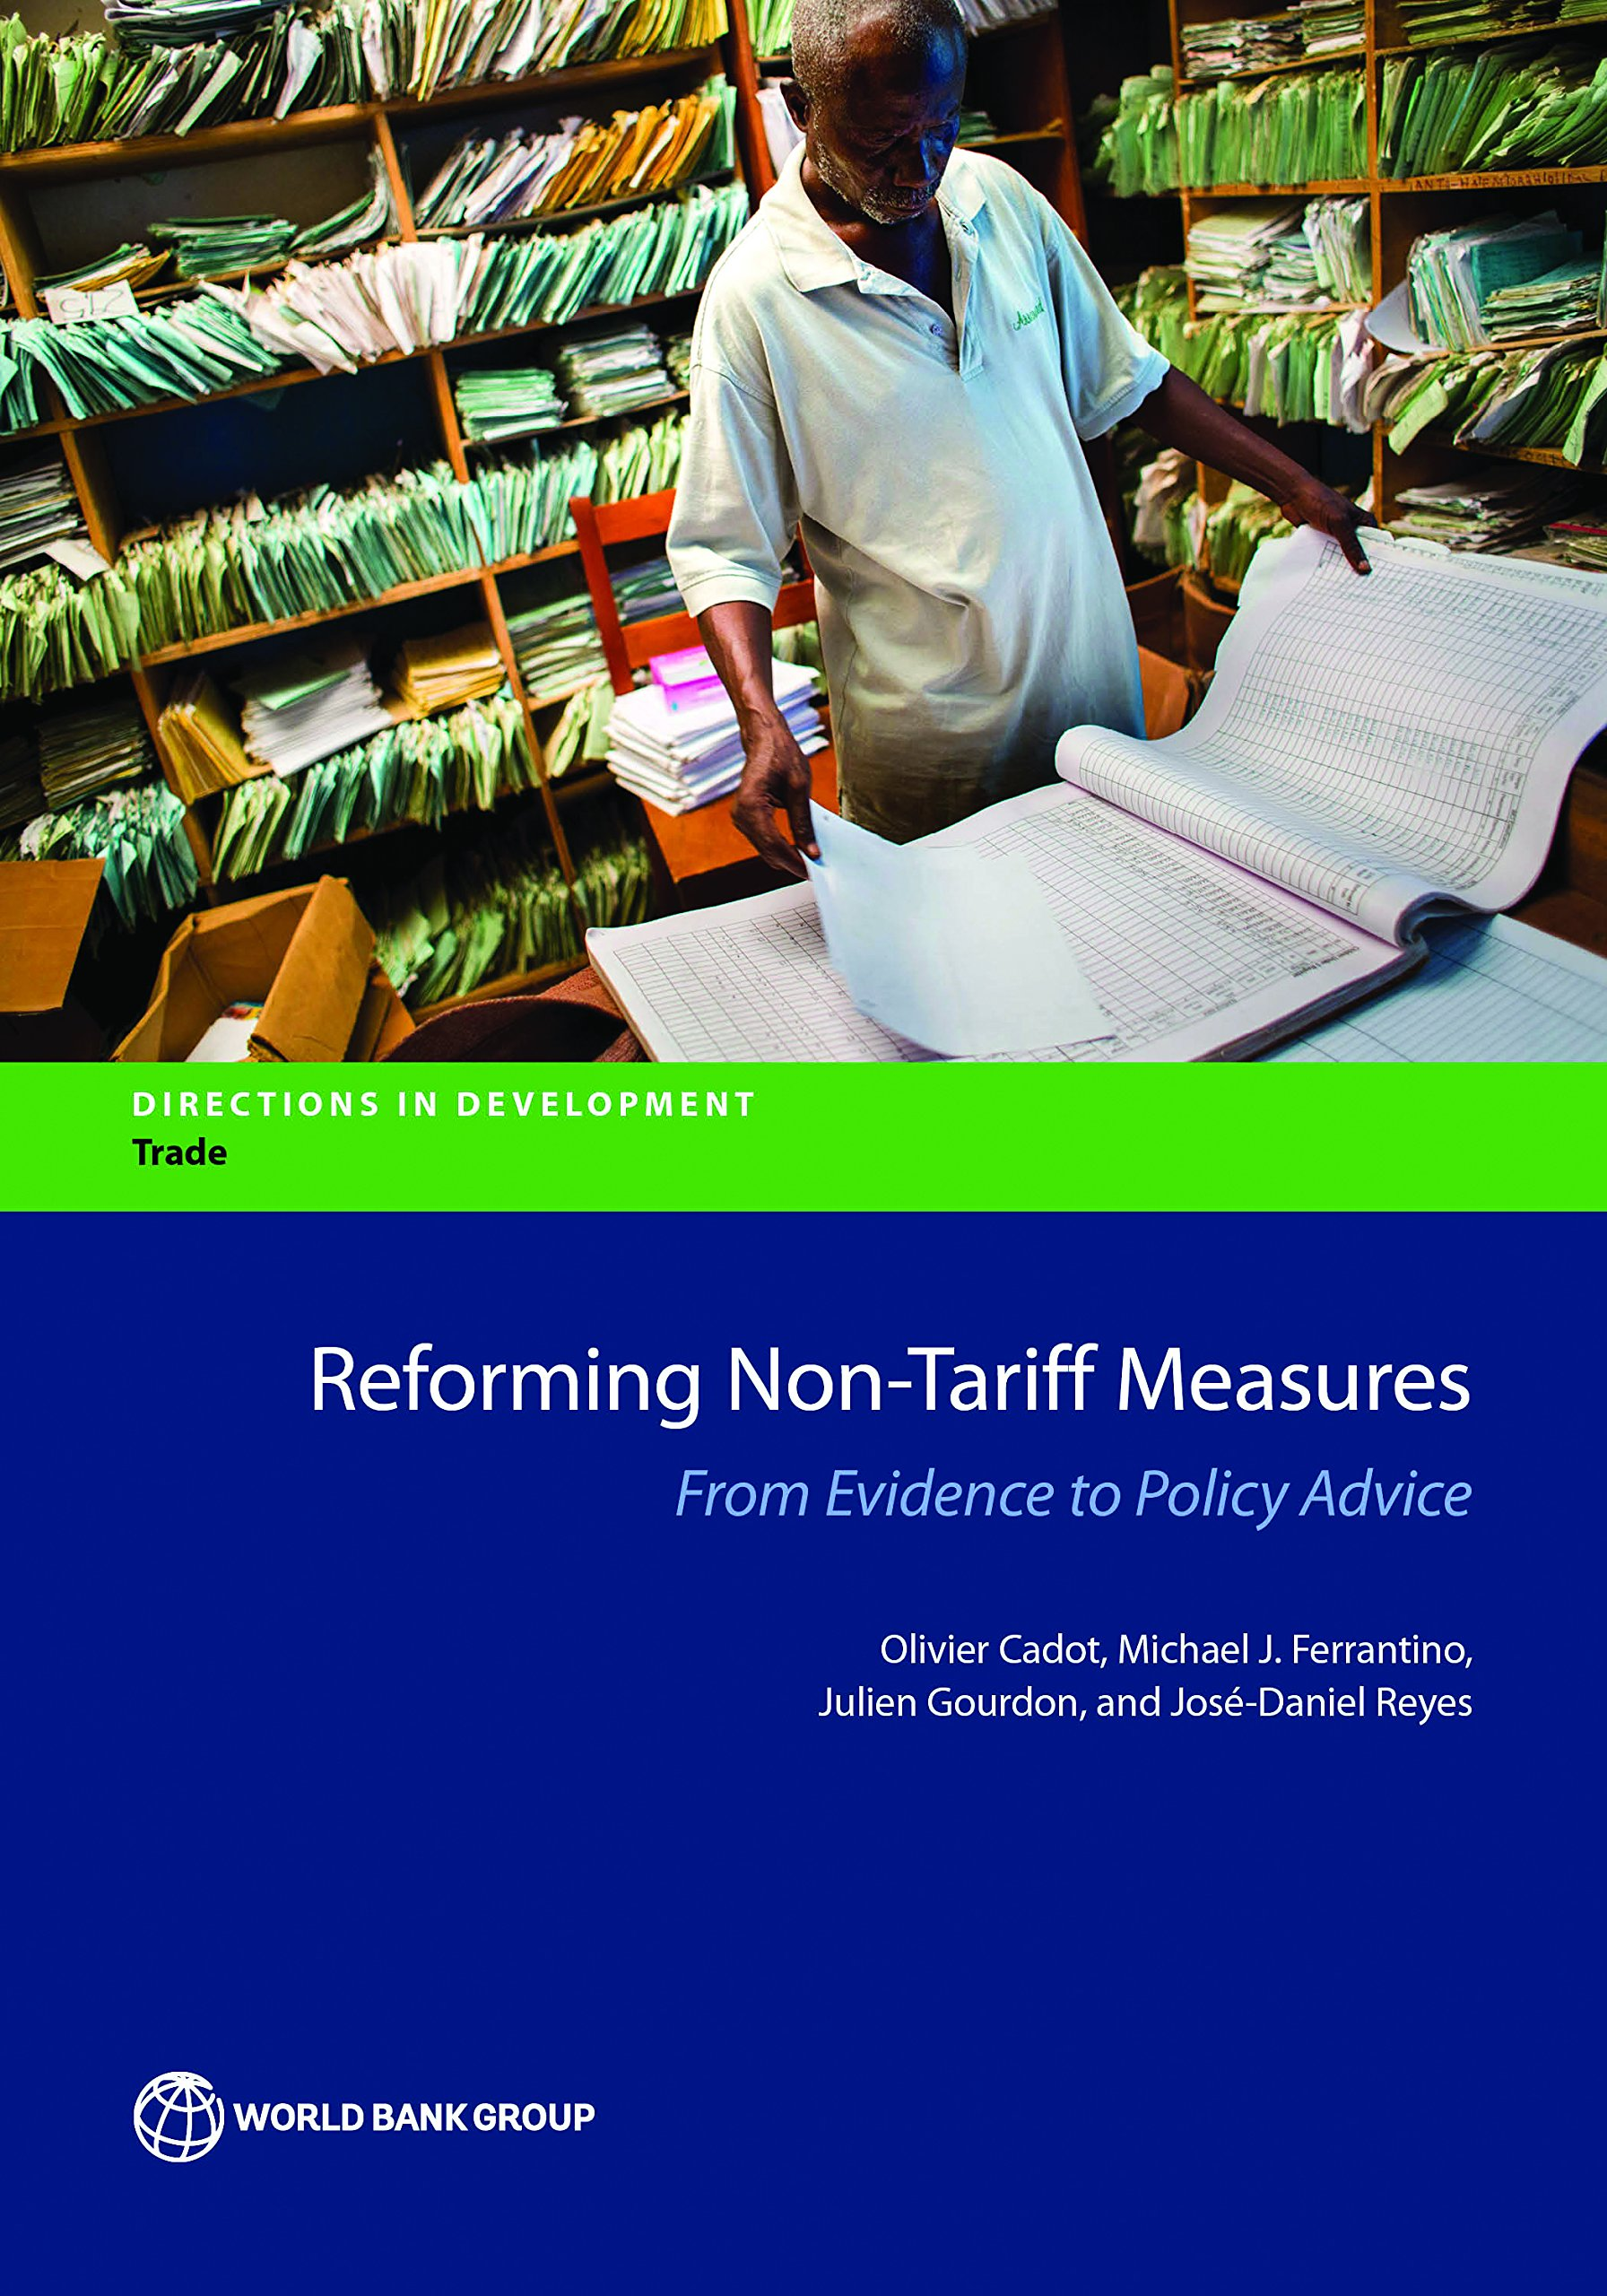 Reforming Non-Tariff Measures: From Evidence to Policy Advice (Directions in Development)